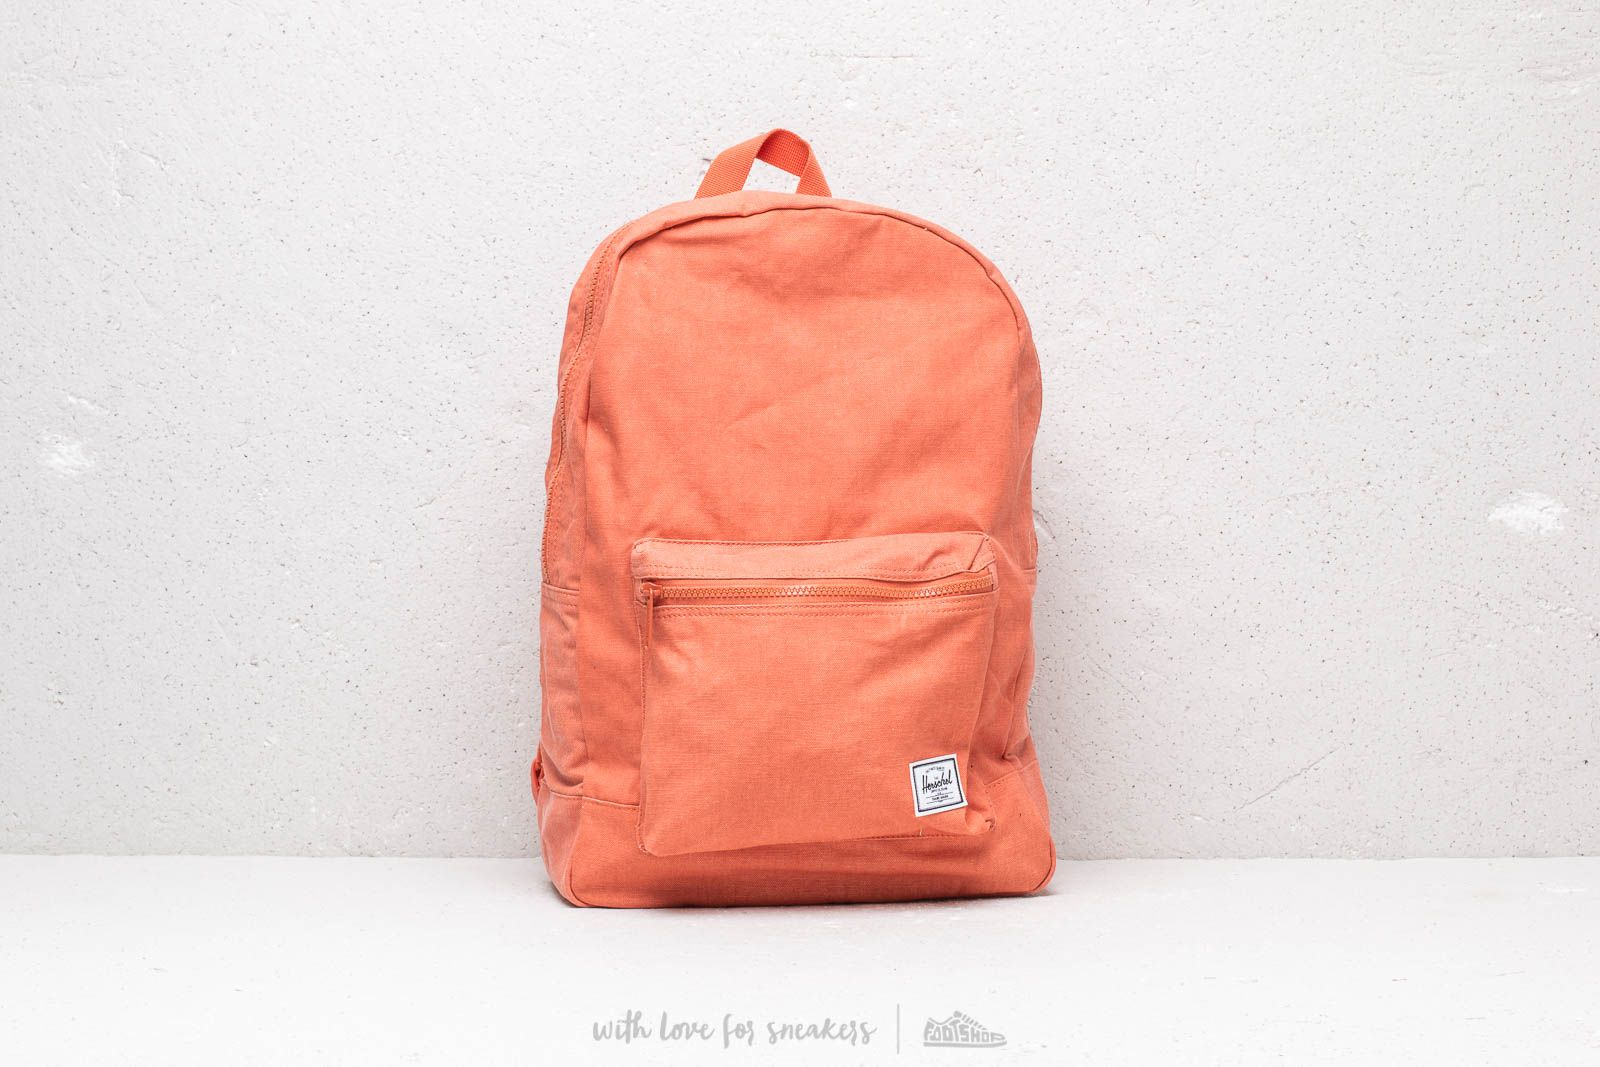 a10b4208a7 Herschel Supply Co. Daypack Backpack Apricot Brandy at a great price  56  buy at Footshop